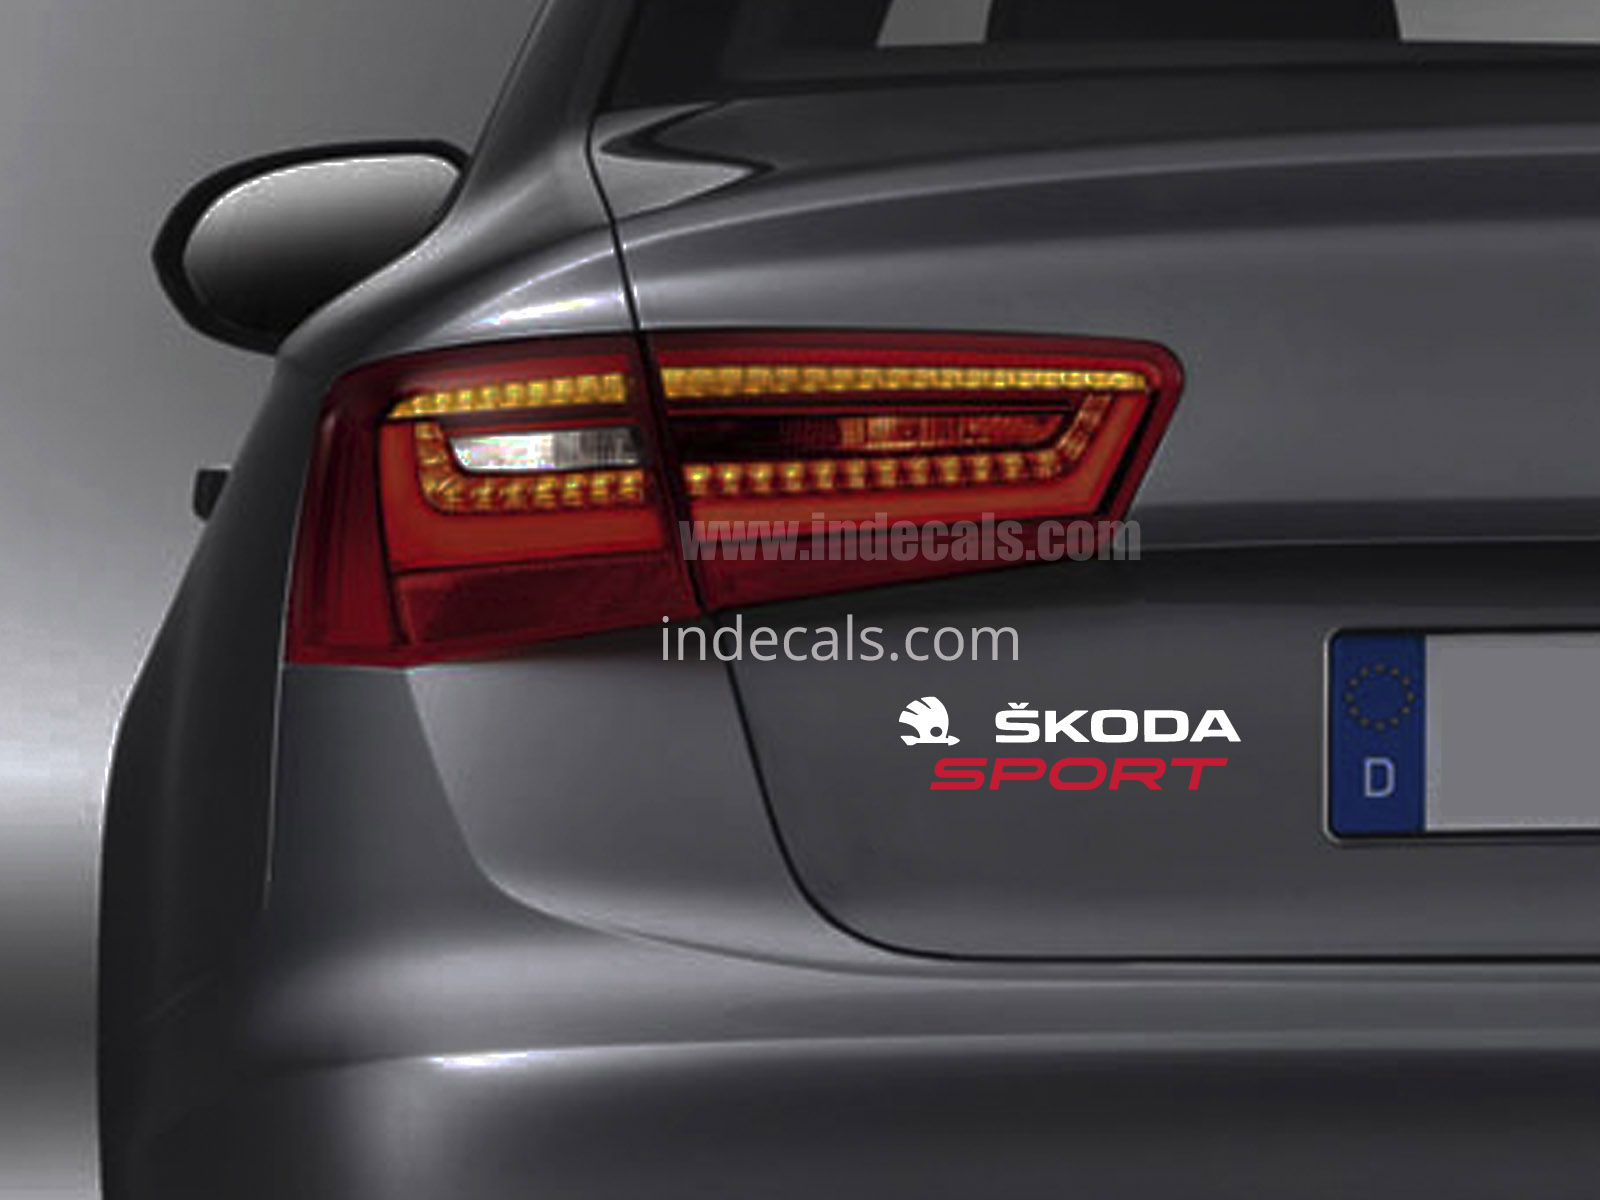 1 x Skoda Sports Sticker for Trunk - White & Red